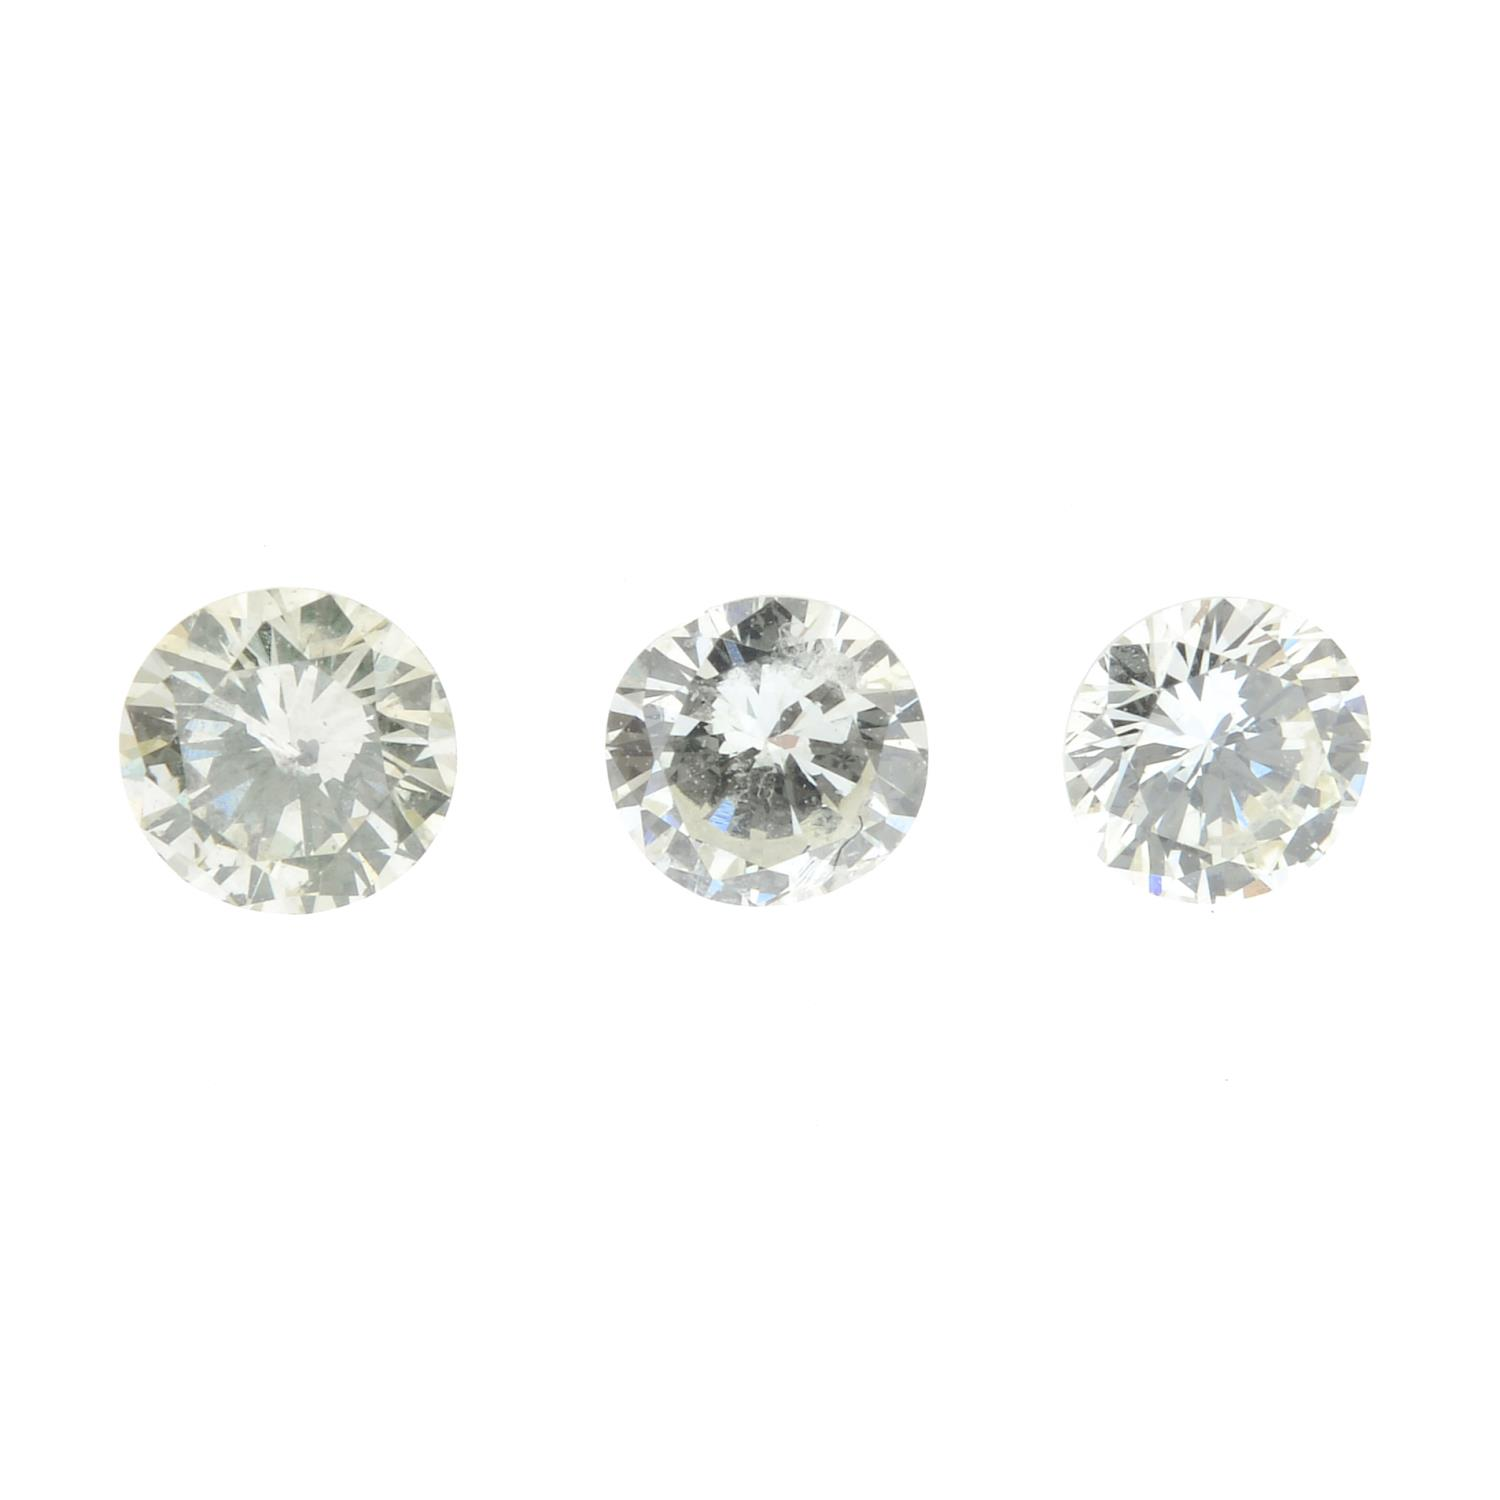 A selection of brilliant-cut diamonds, total weight 1.39cts.